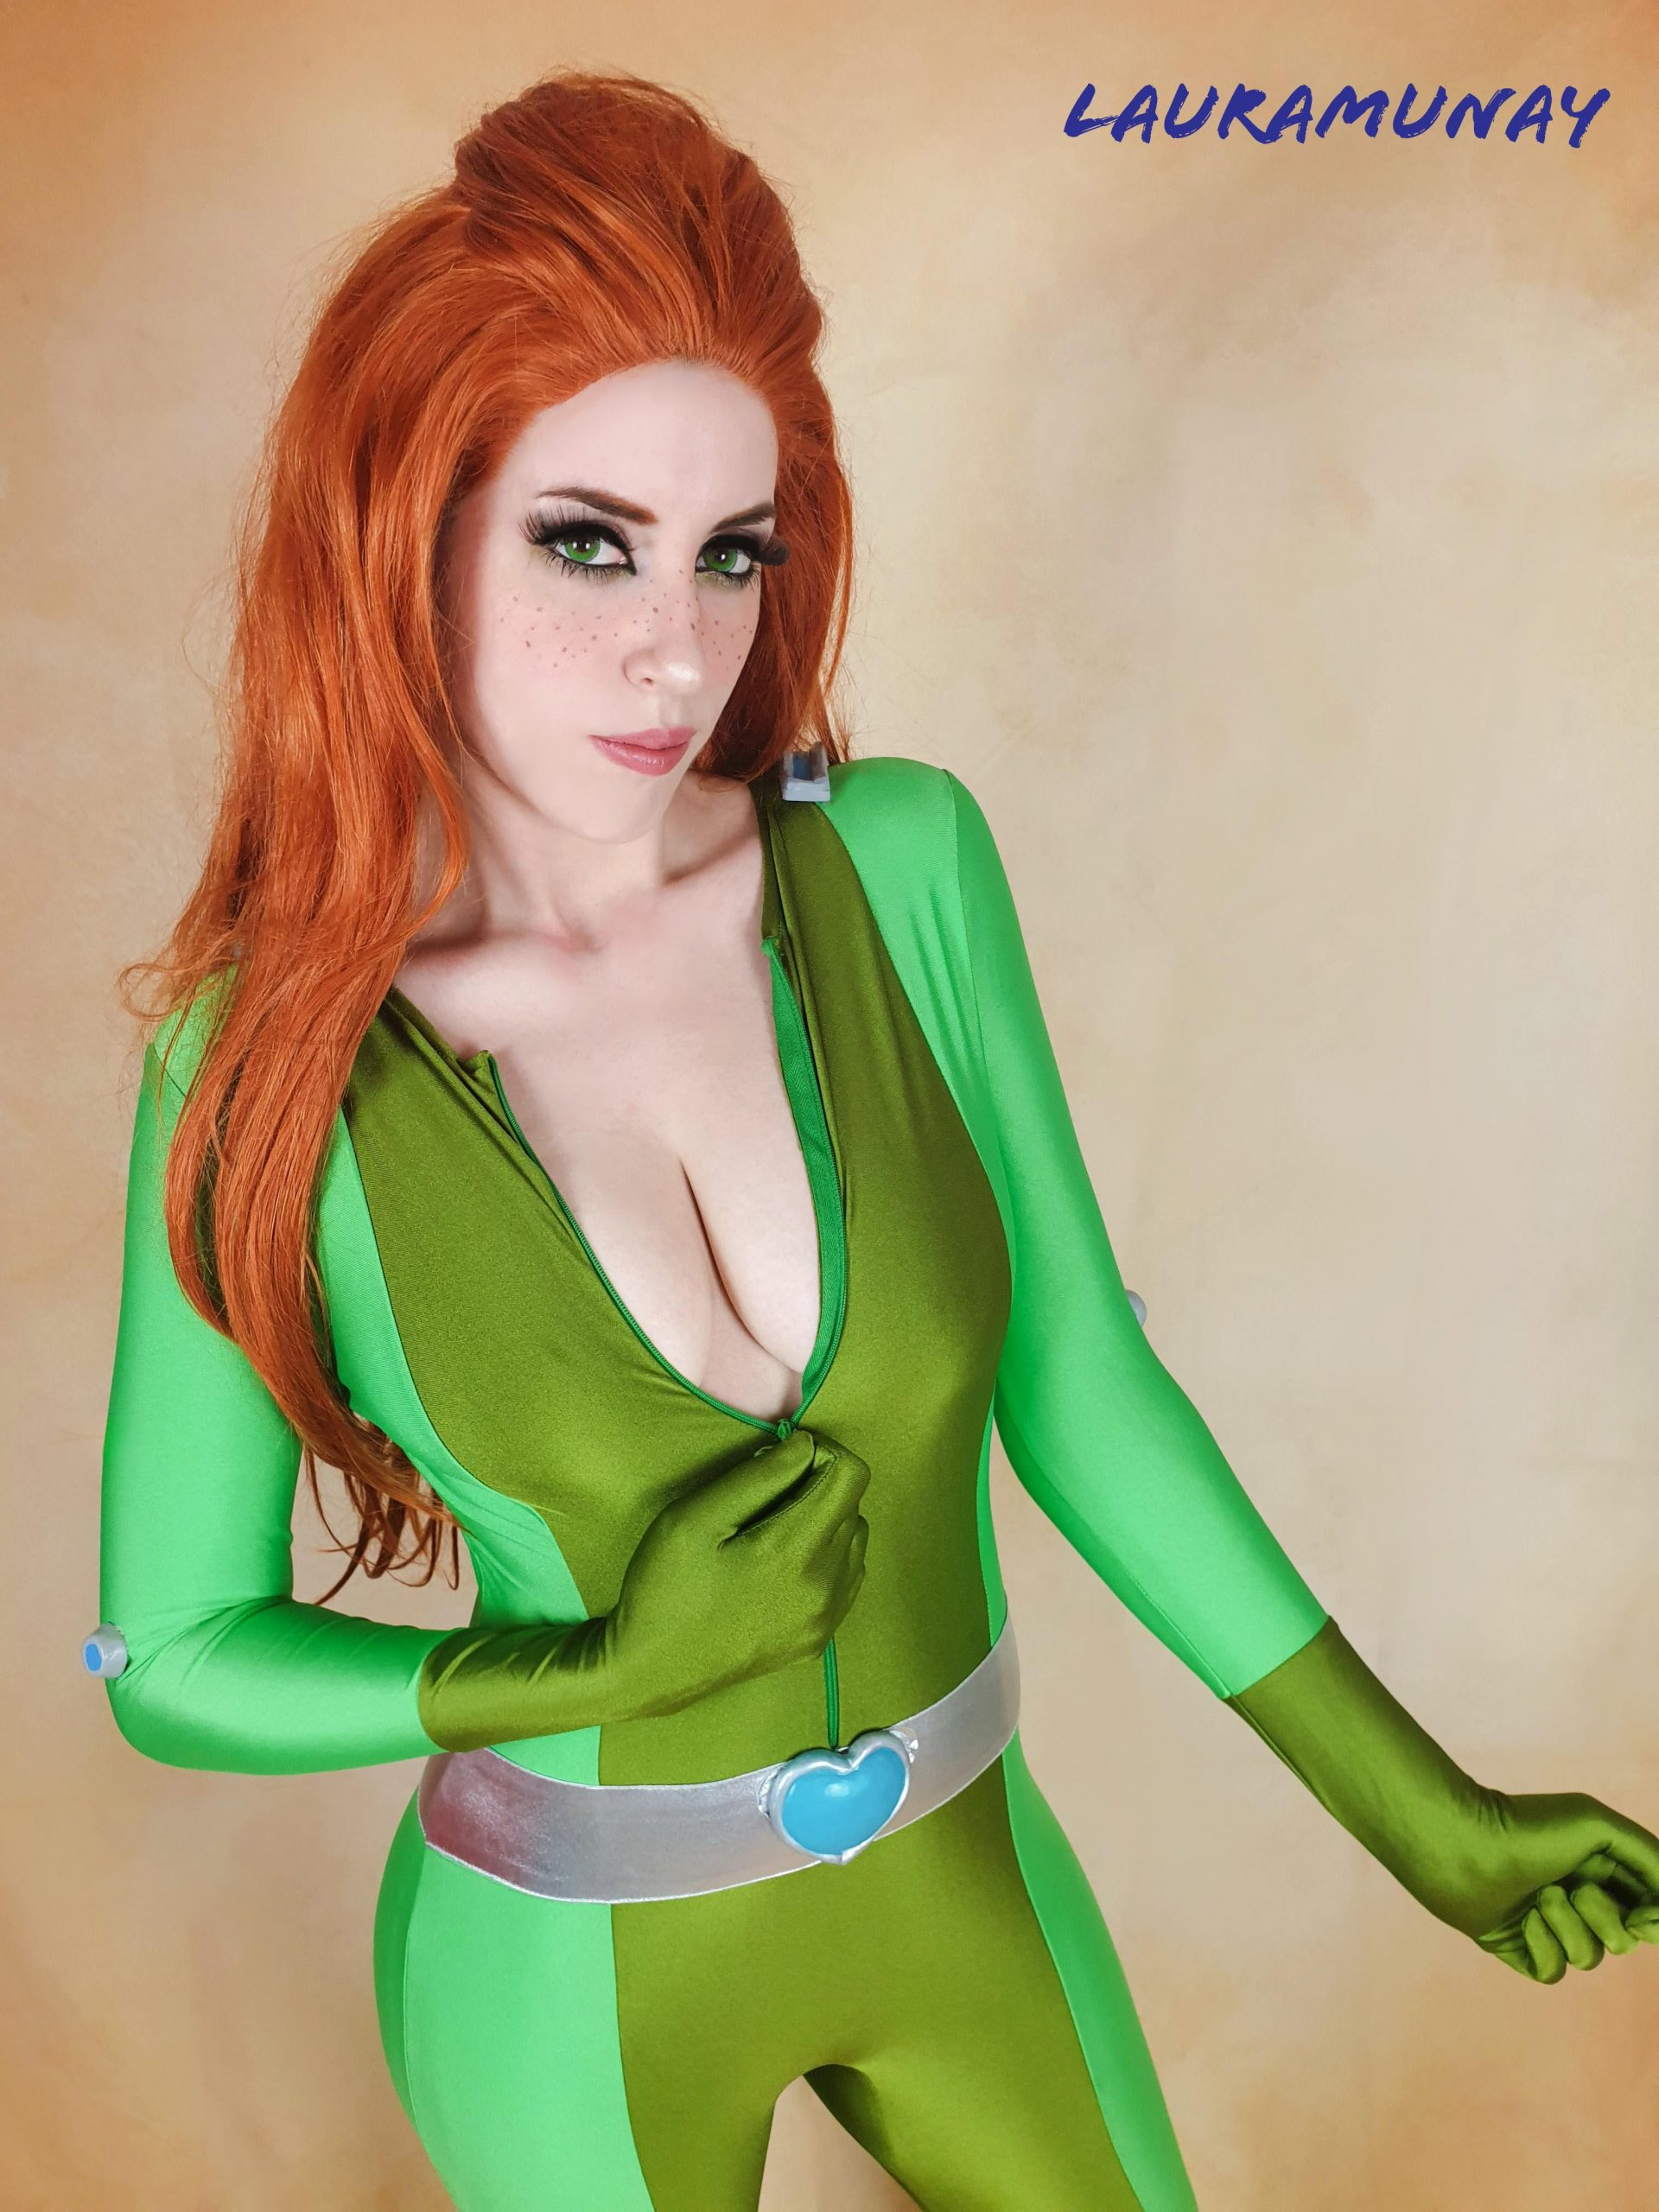 Sam From Totally Spies By Lauramunay